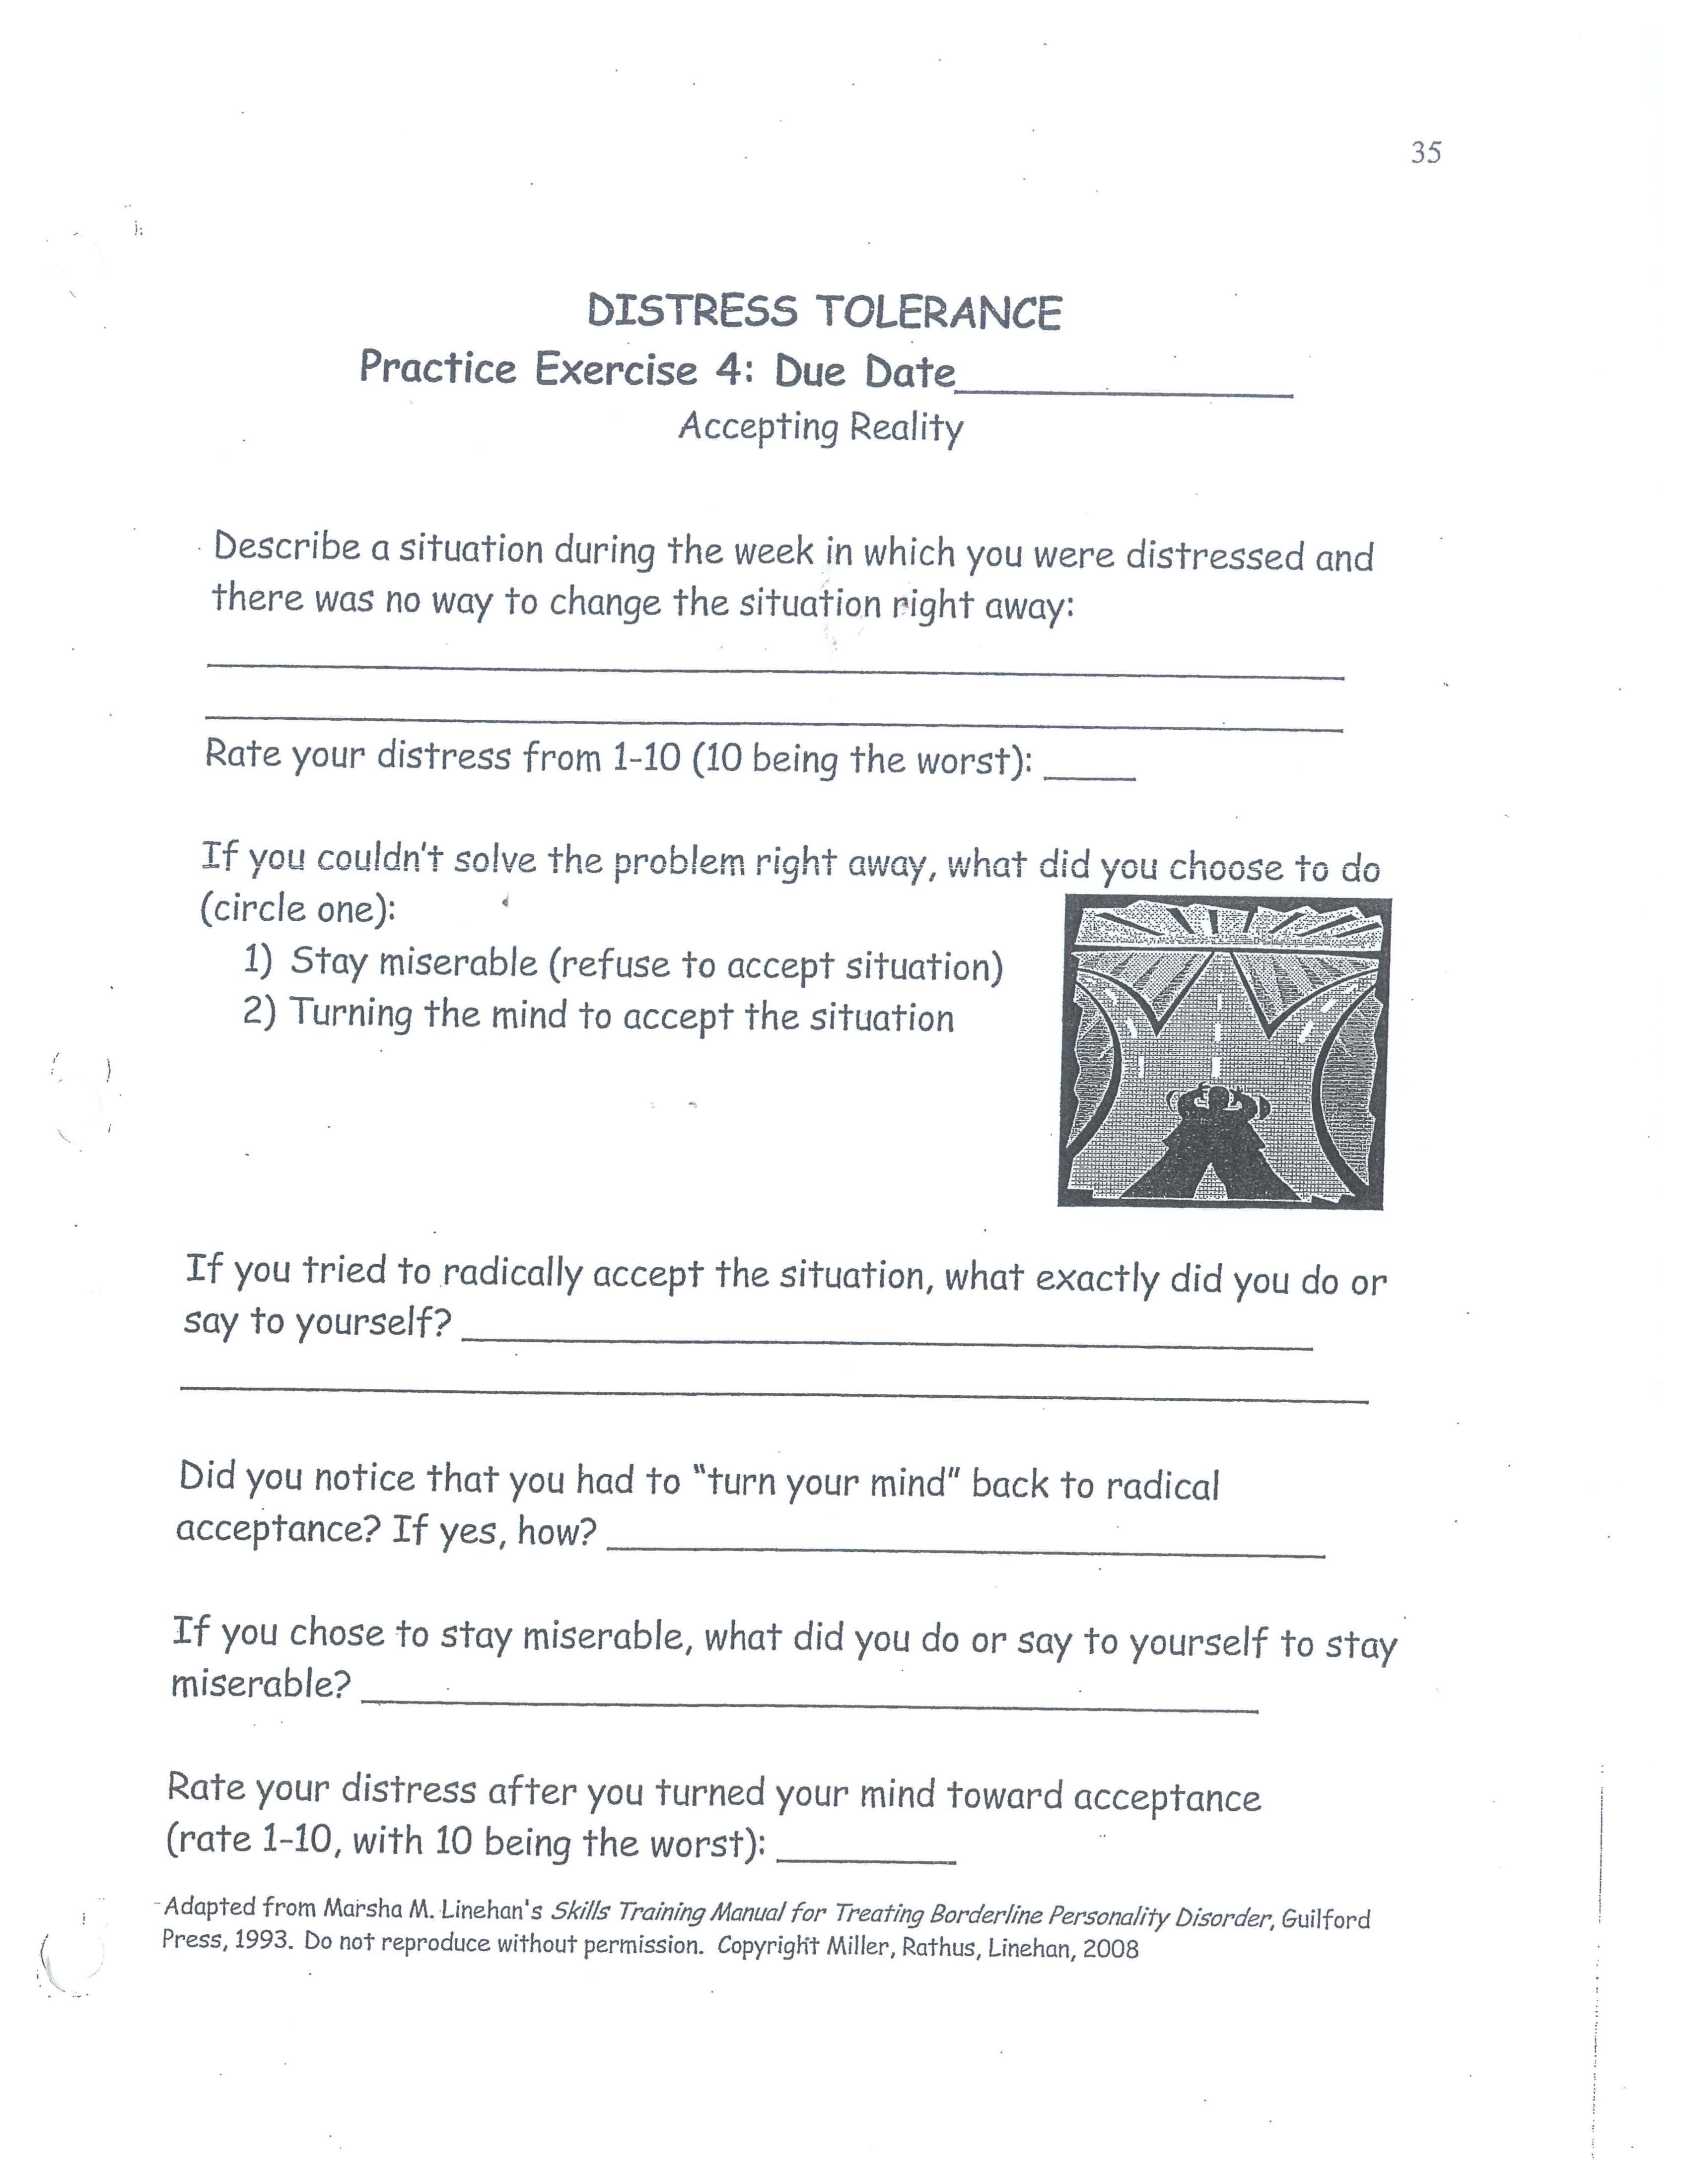 Dbt Distress Tolerance